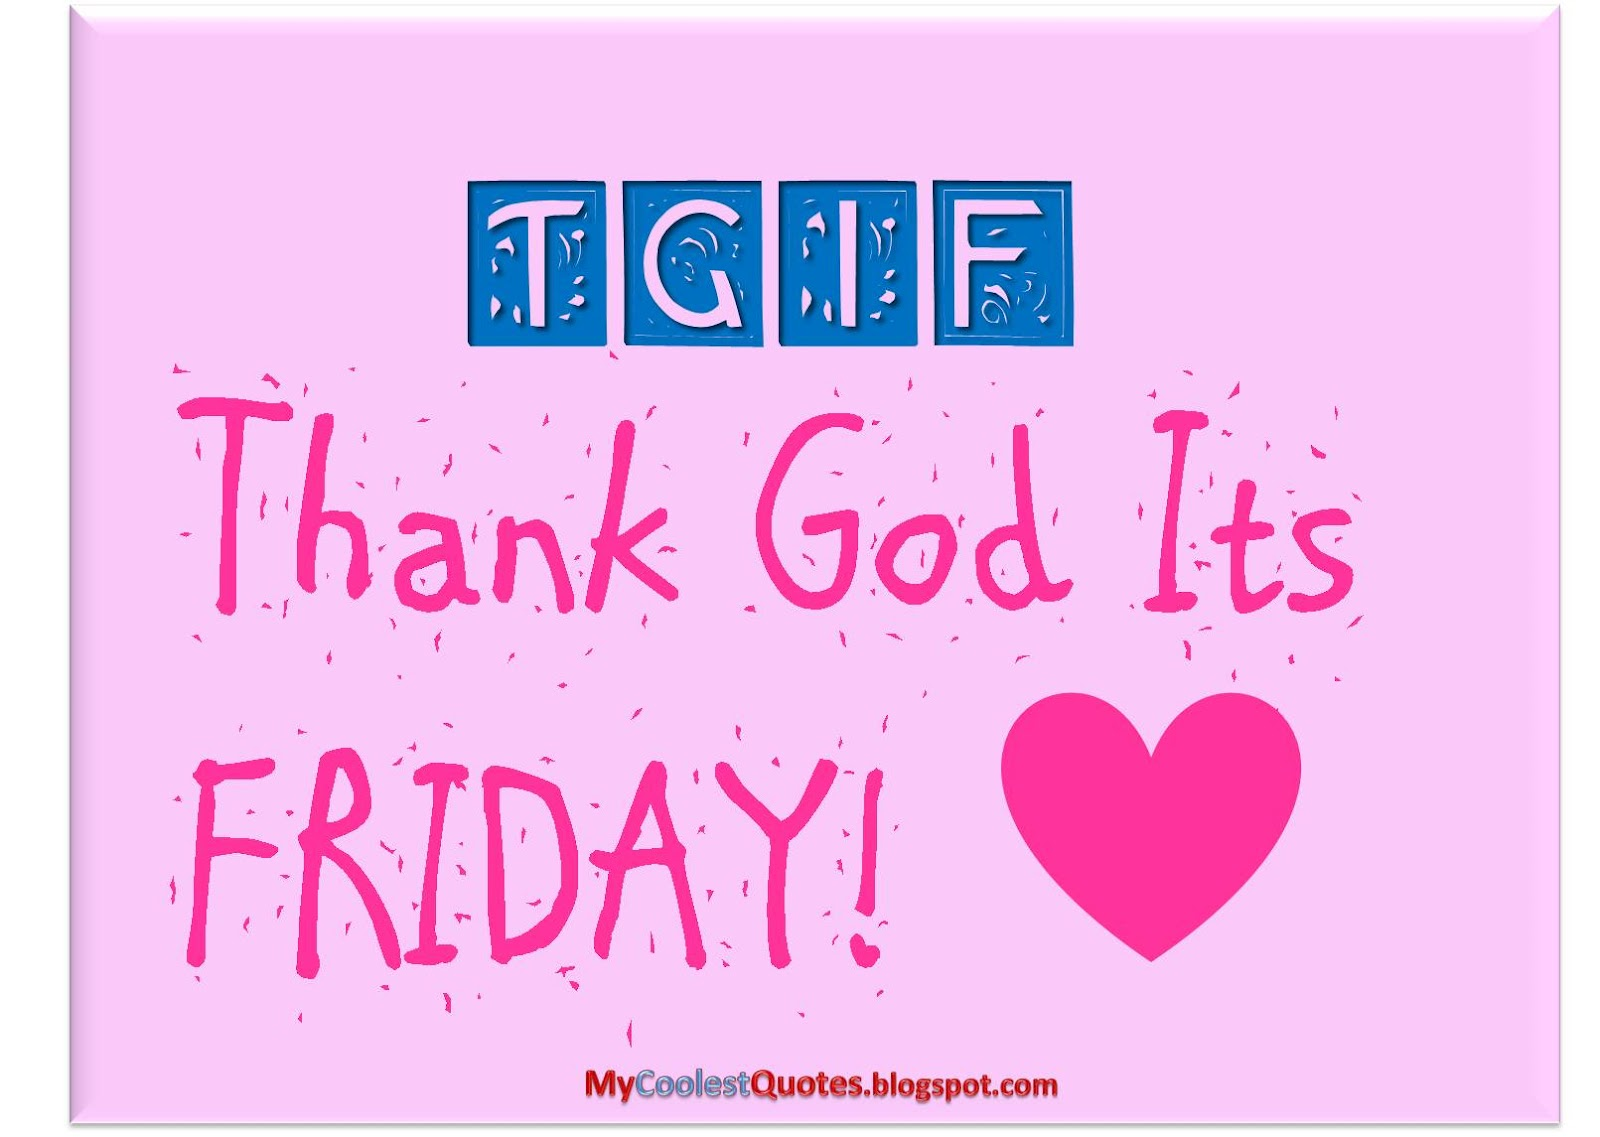 Happy TGIF!